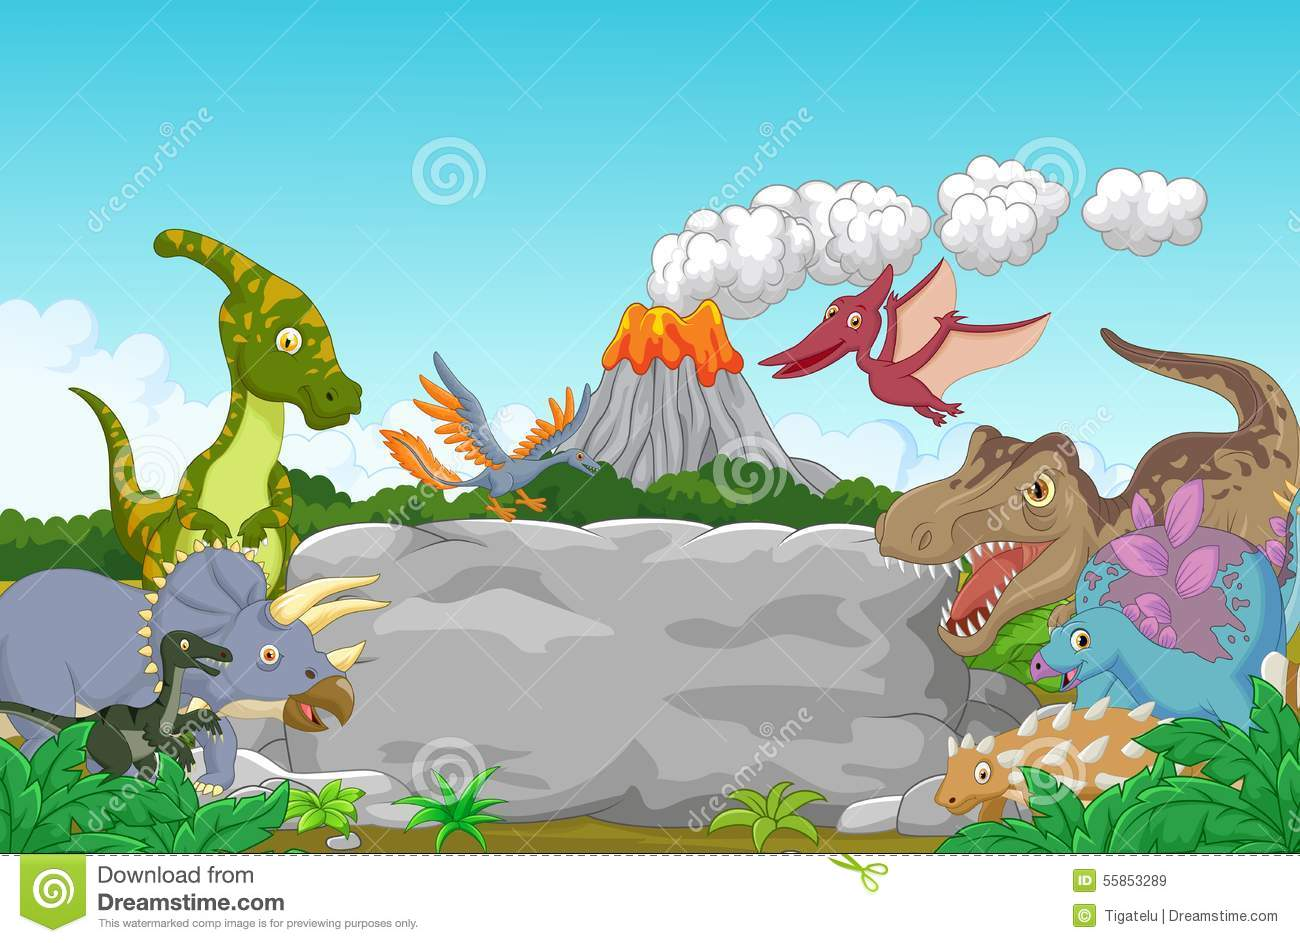 Collection Dinosaur Jungle Stock Illustrations 514 Collection Dinosaur Jungle Stock Illustrations Vectors Clipart Dreamstime